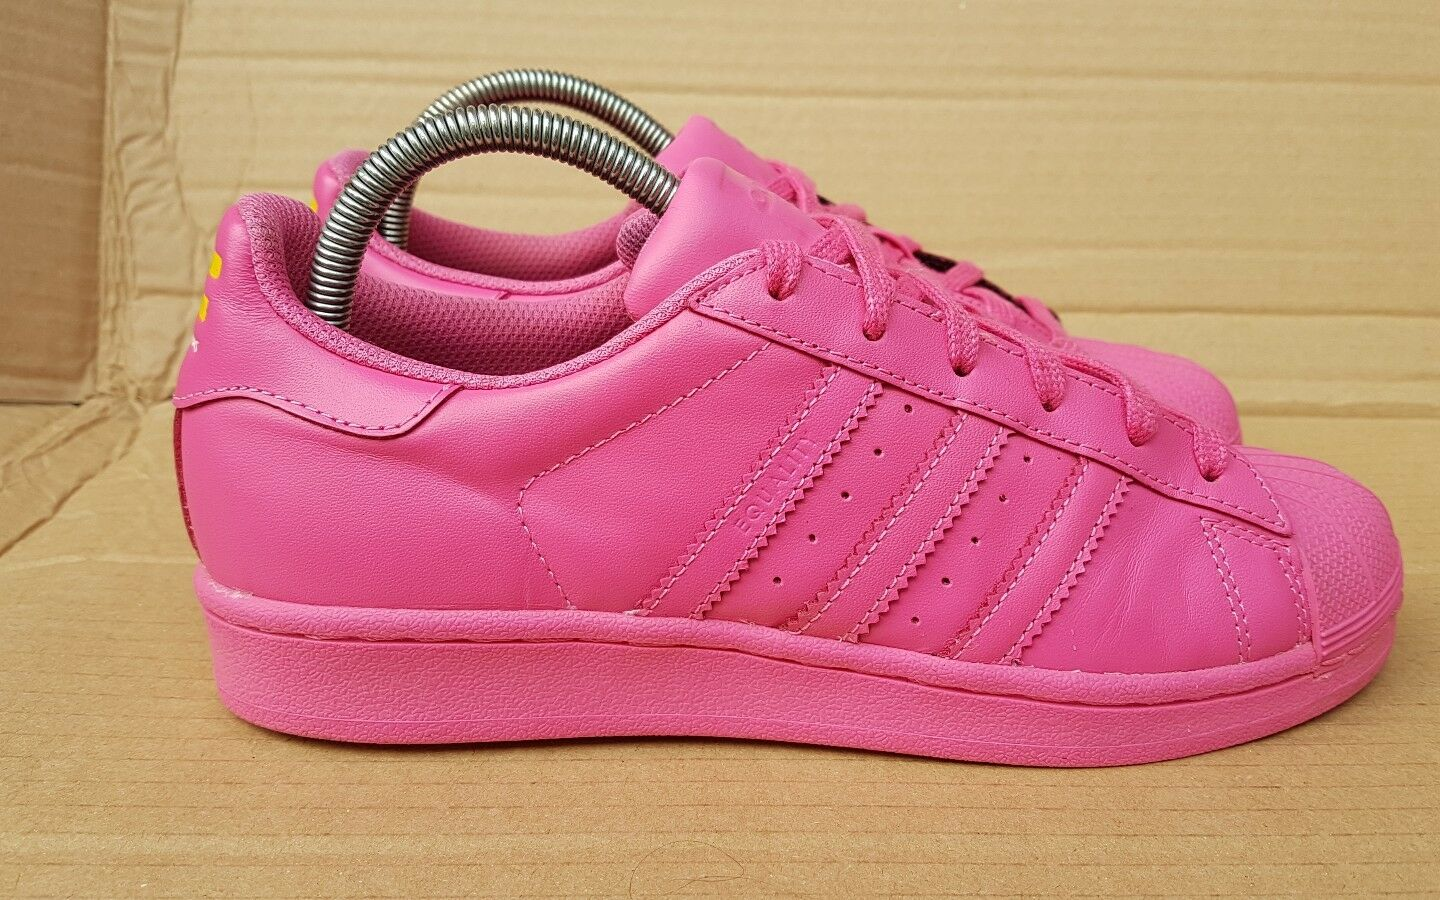 GORGEOUS ADIDAS SIZE SUPERSTAR PHARRELL WILLIAMS SHELL TOE TRAINERS SIZE ADIDAS 3 UK PINK ff8687